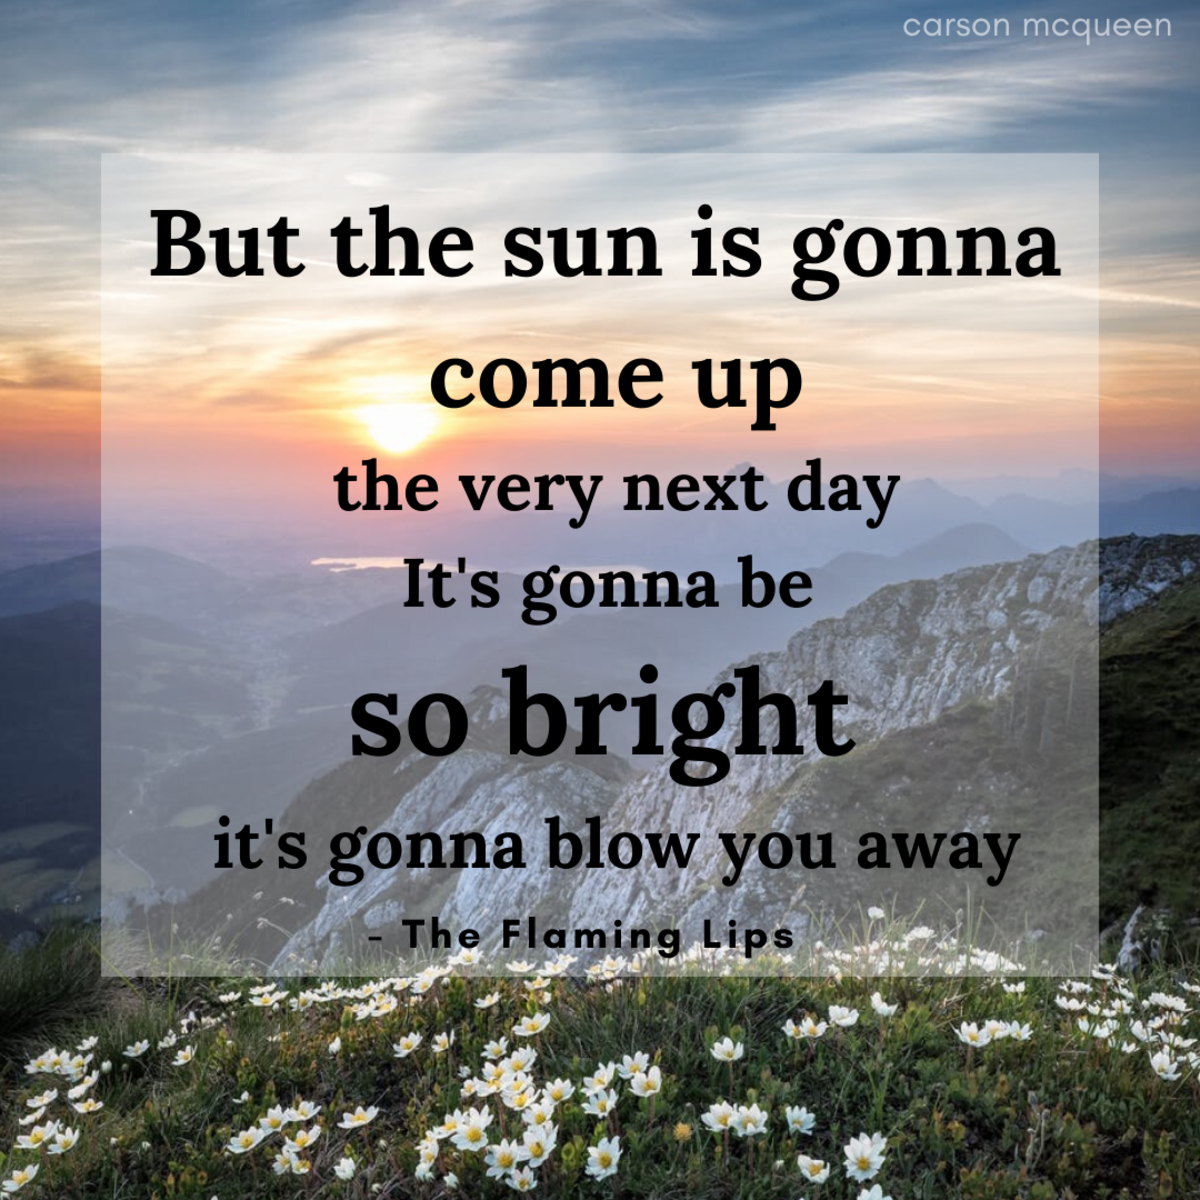 """But the sun is gonna come up the very next day. It's gonna be  so bright it's gonna blow you away."" - The Flaming Lips"